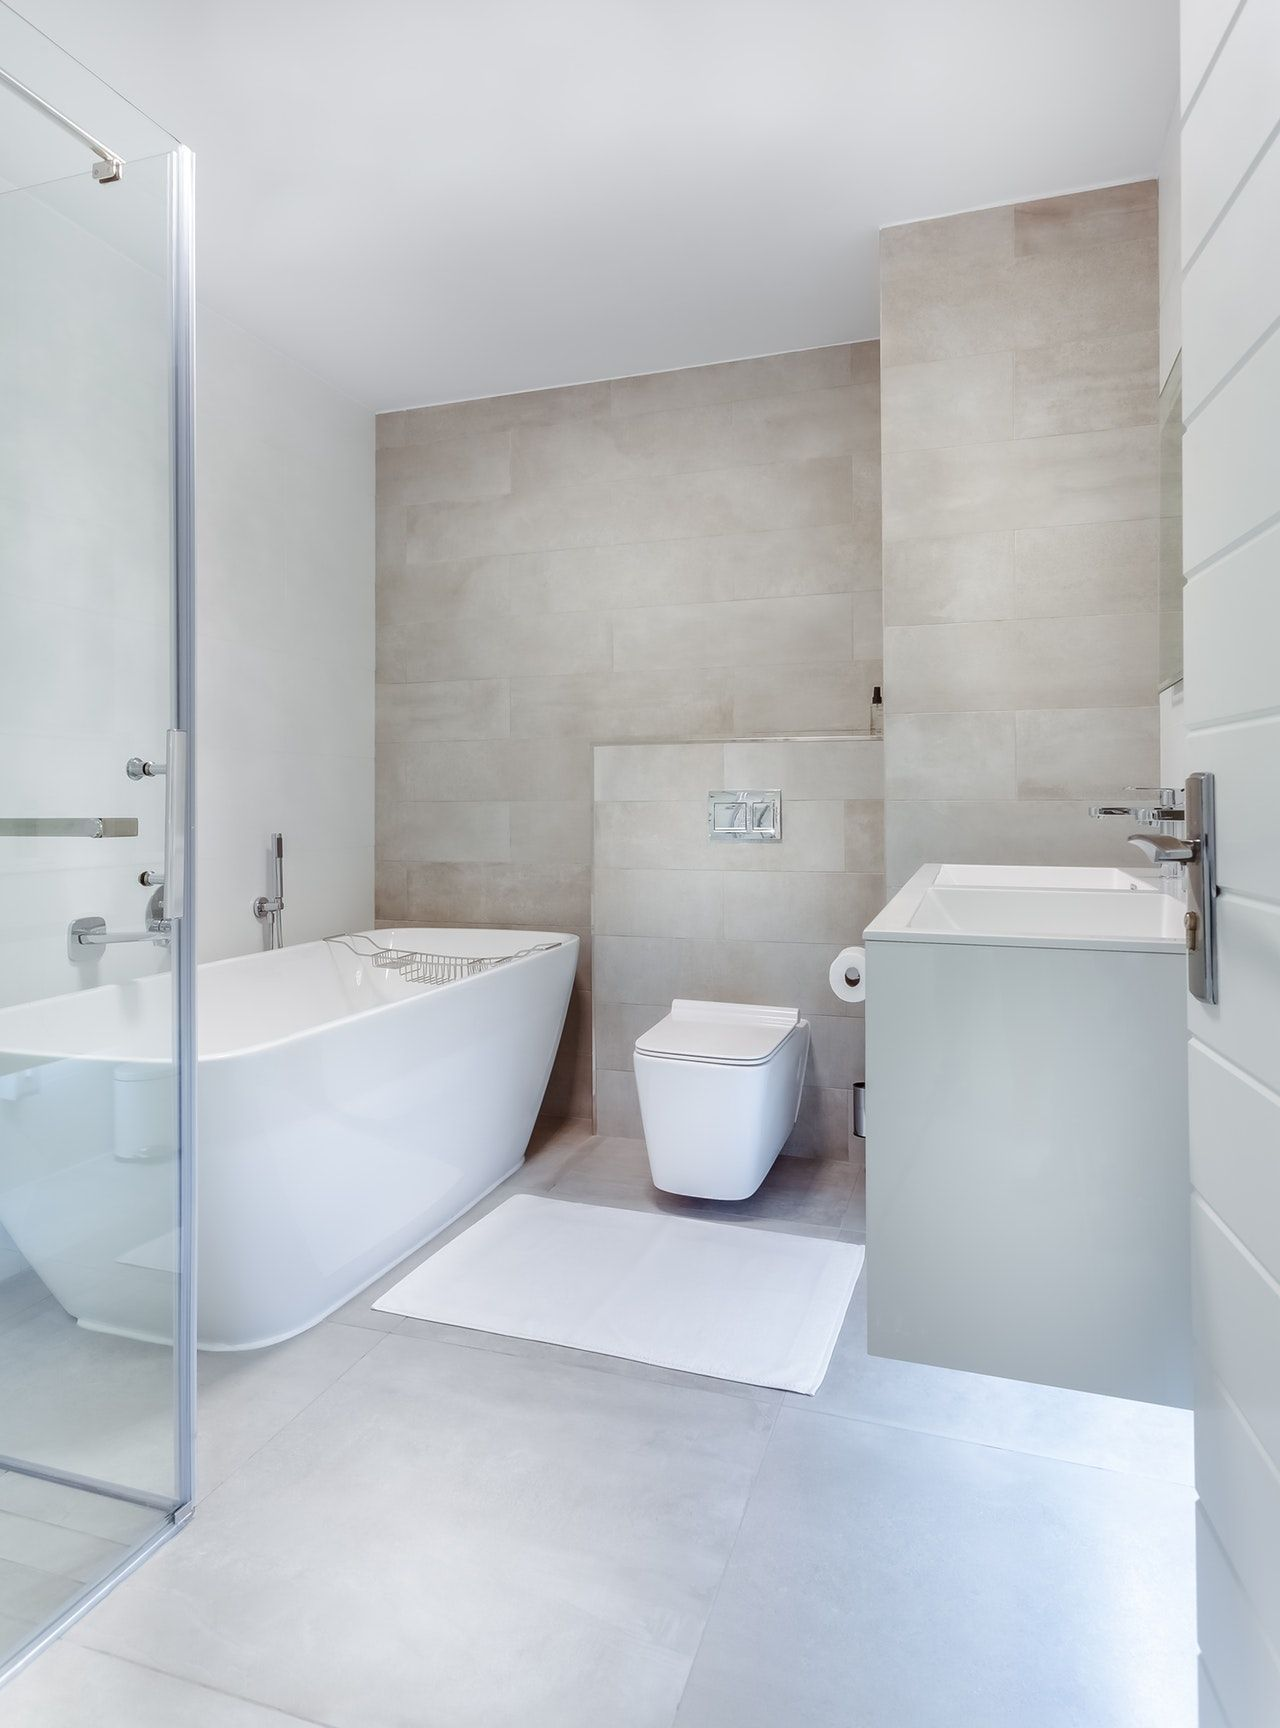 10 Common Bathroom Design Mistakes During Home Renovation In 2020 Bathroom Trends Small Bathroom Bathroom Design